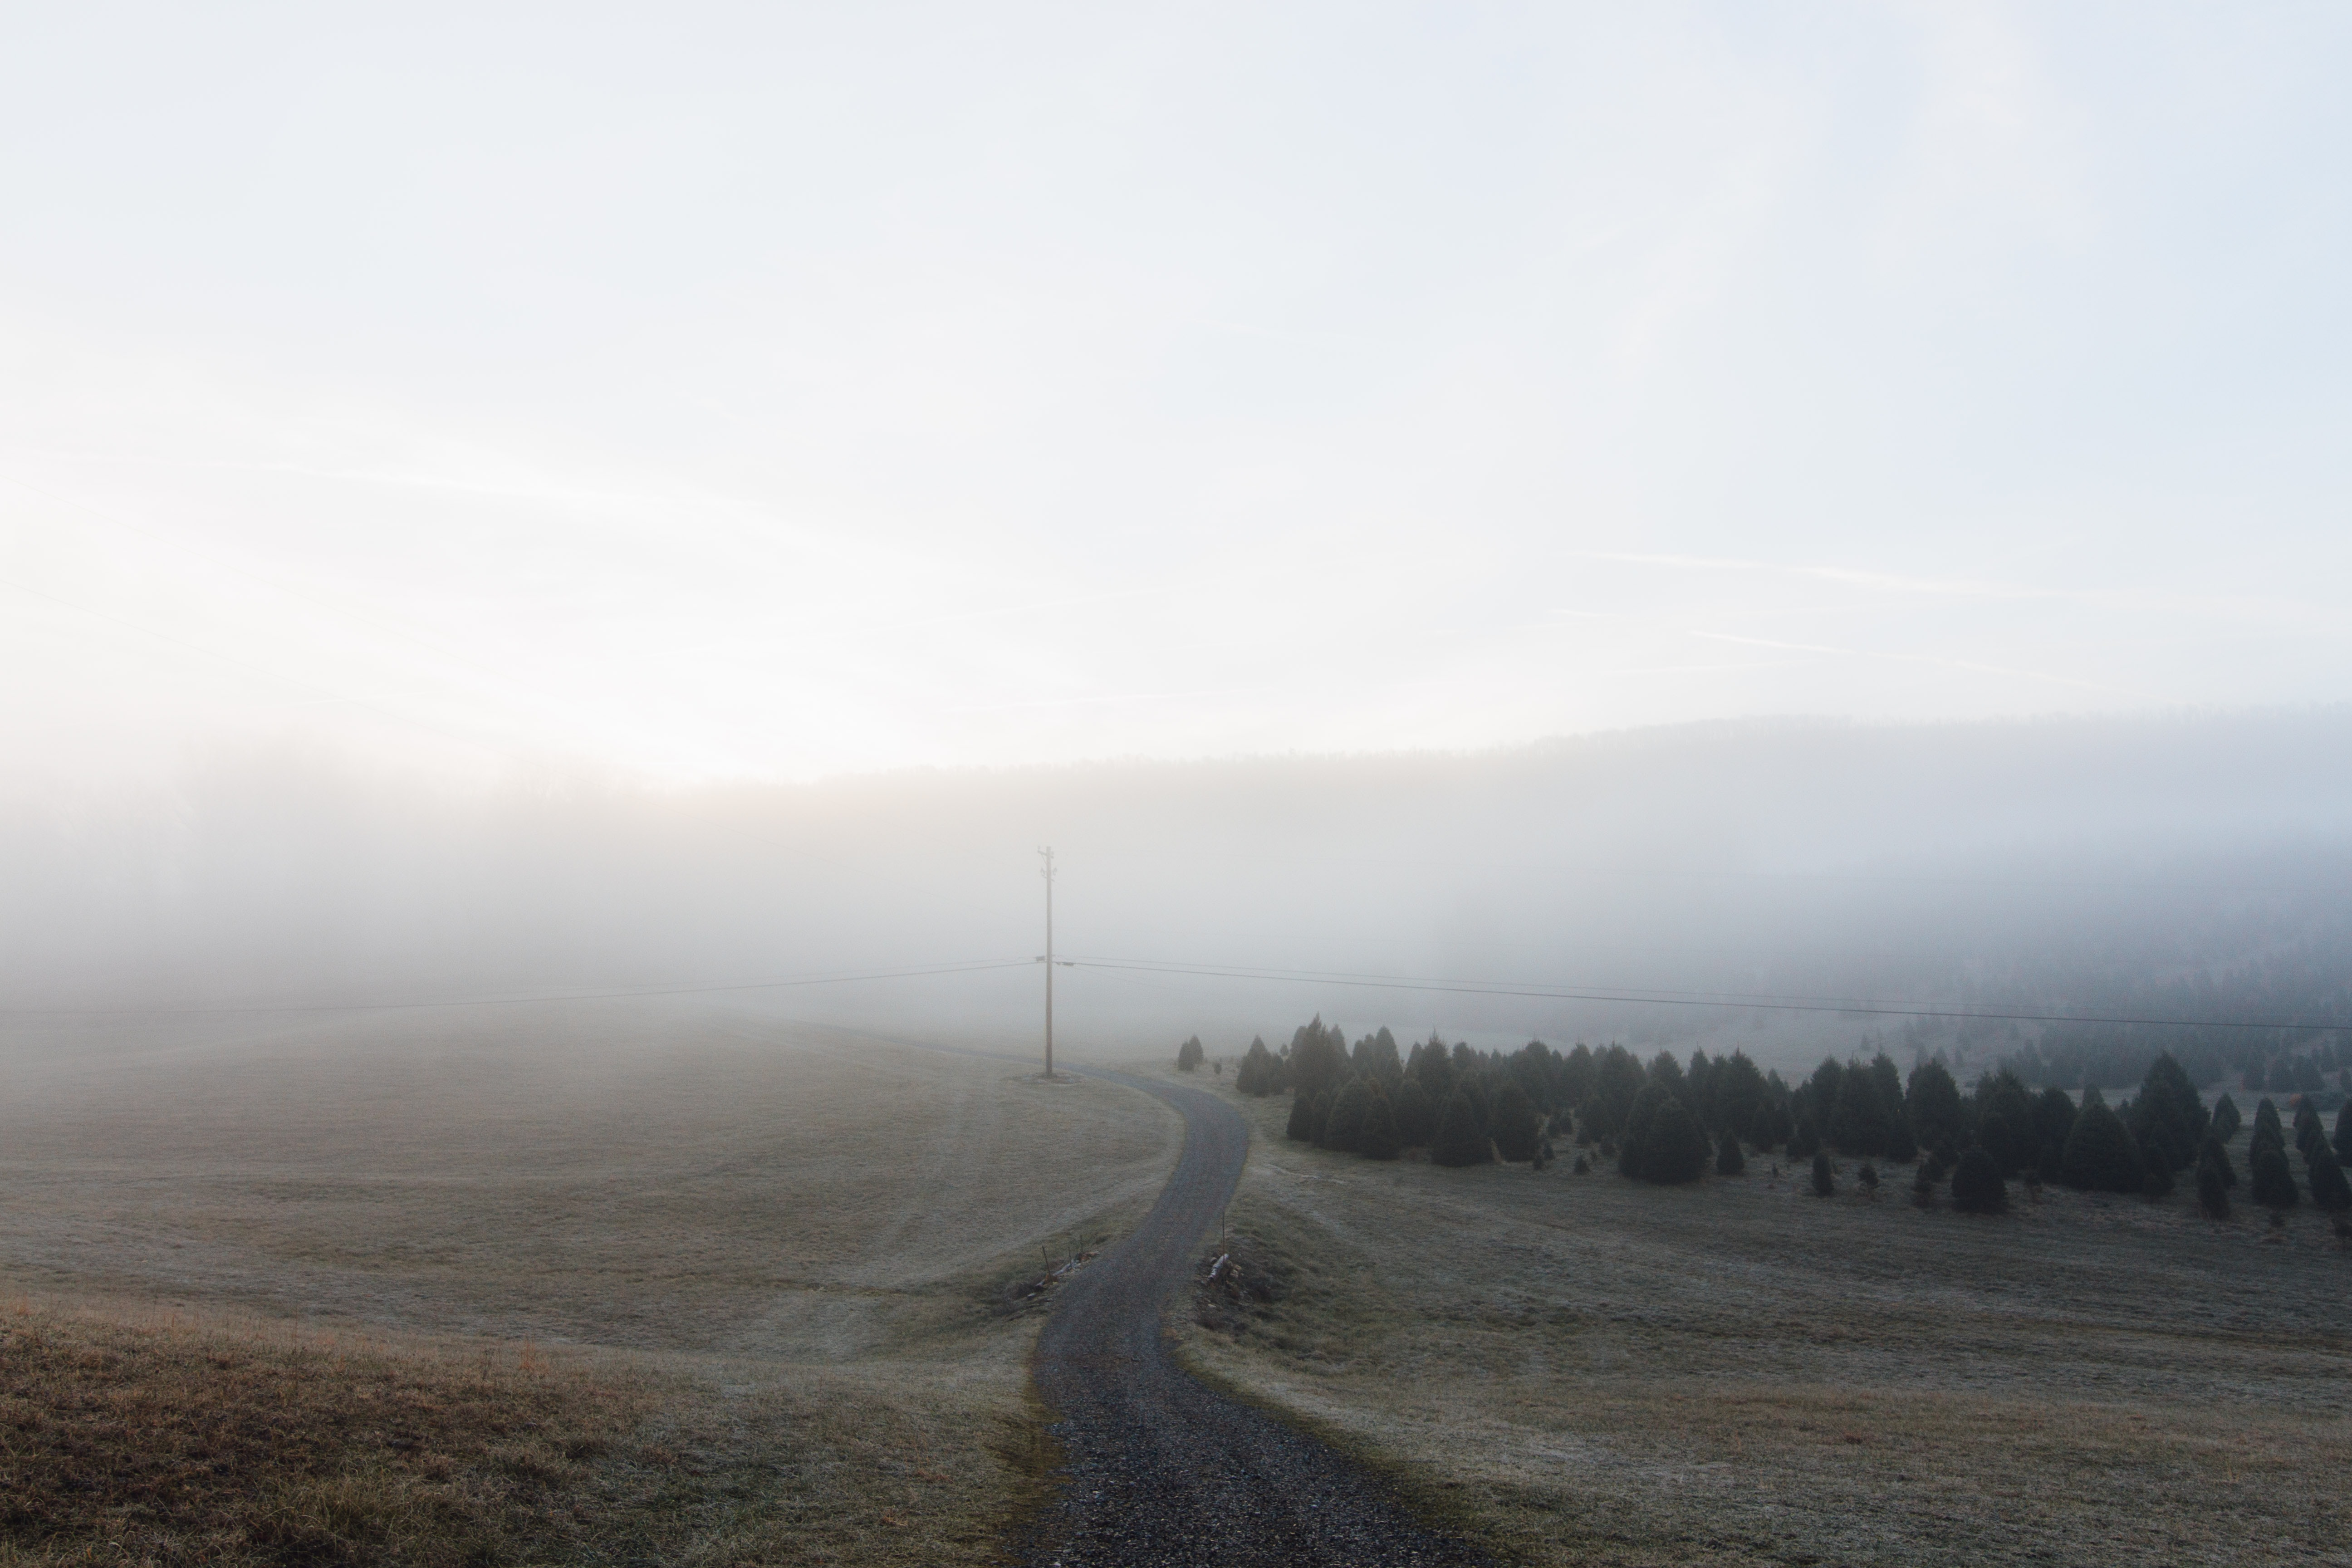 Rural road near farm field and pine trees on a foggy morning